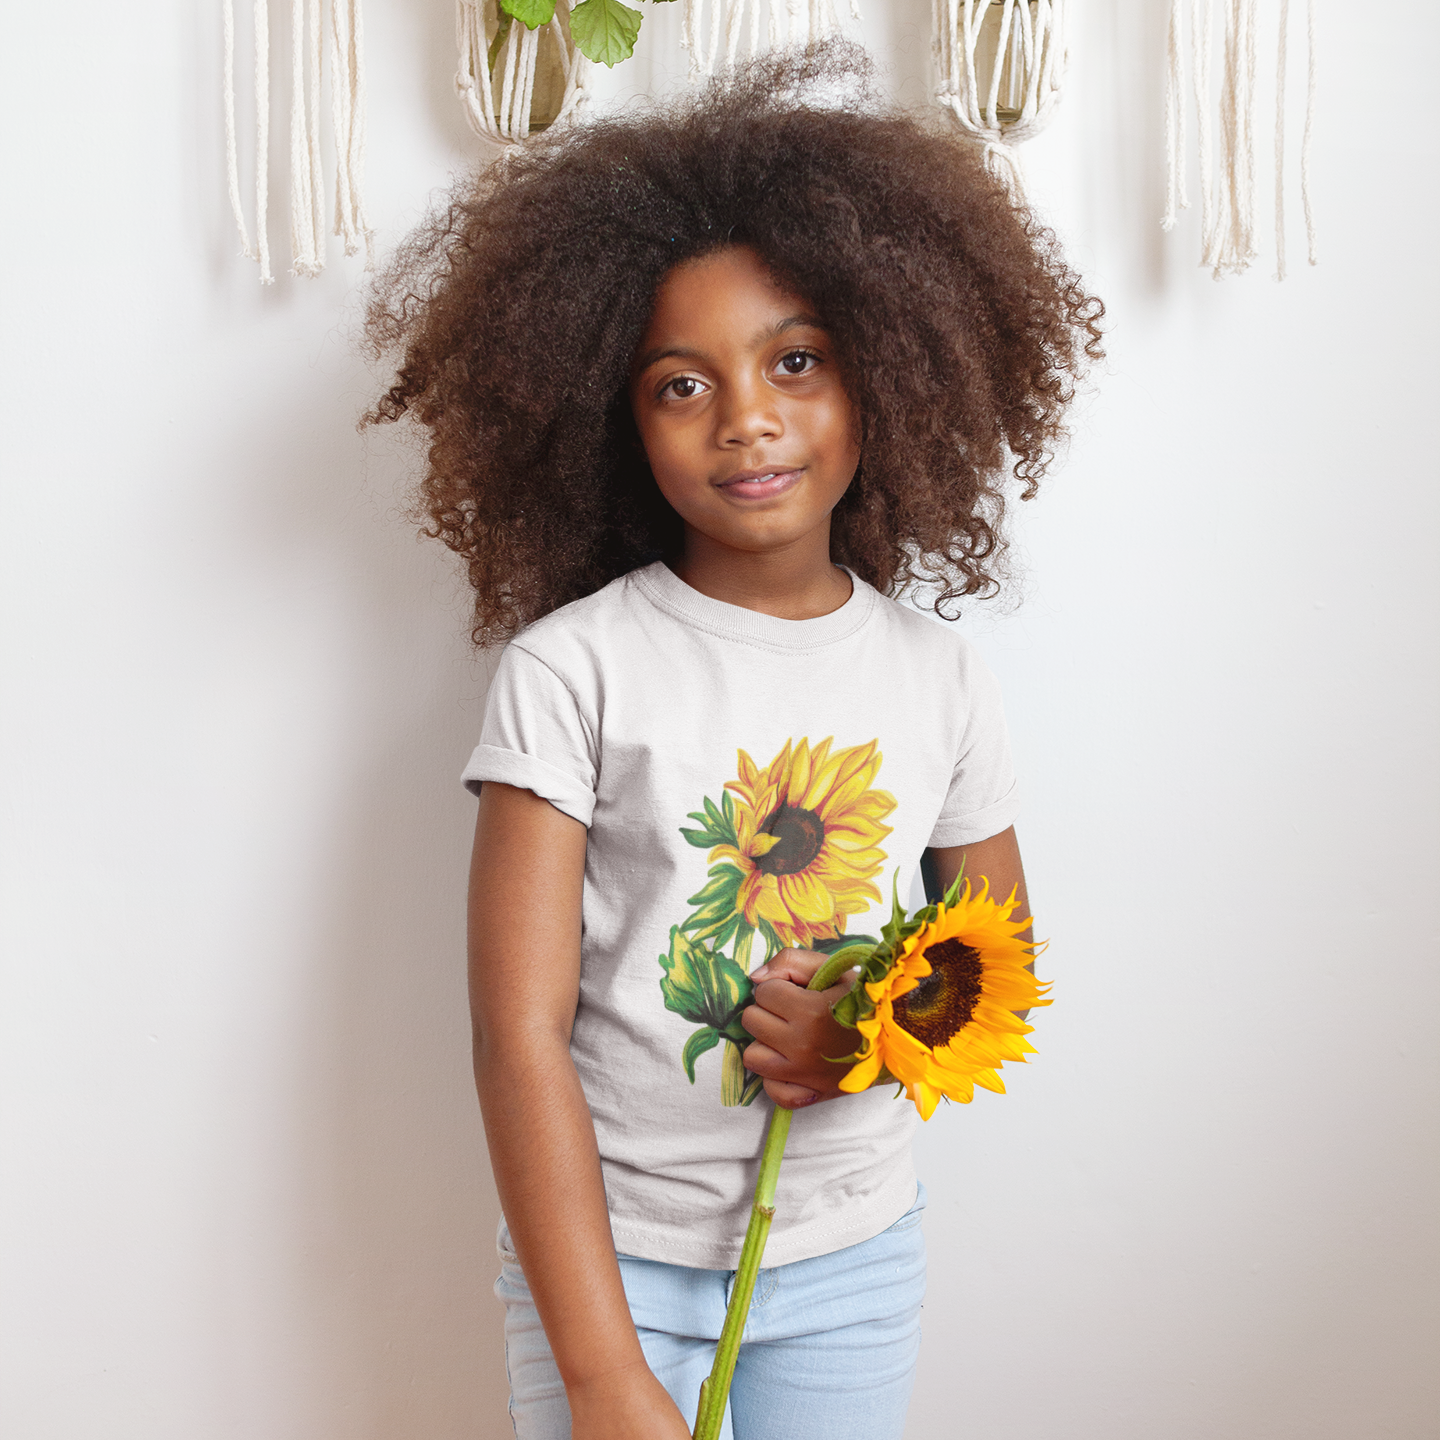 little girl wearing a shirt printed with a sunflower and holding a sunflower